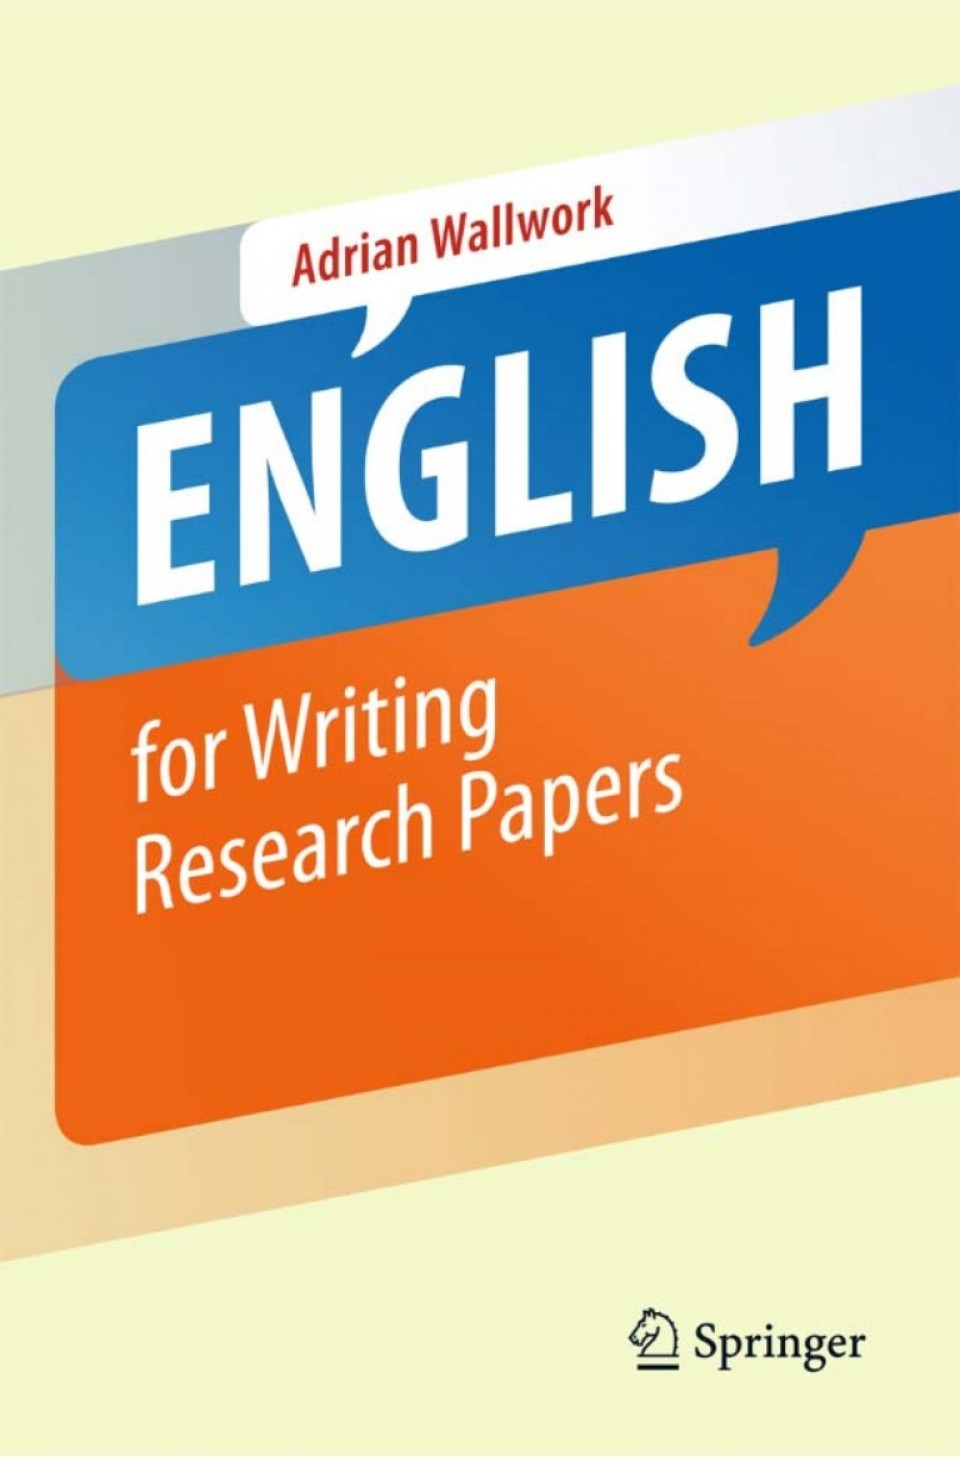 017 Research Paper Writing Englishforwritingresearchpapers Conversion Gate01 Thumbnail Unforgettable Rubric Software Free Download Prompts 960